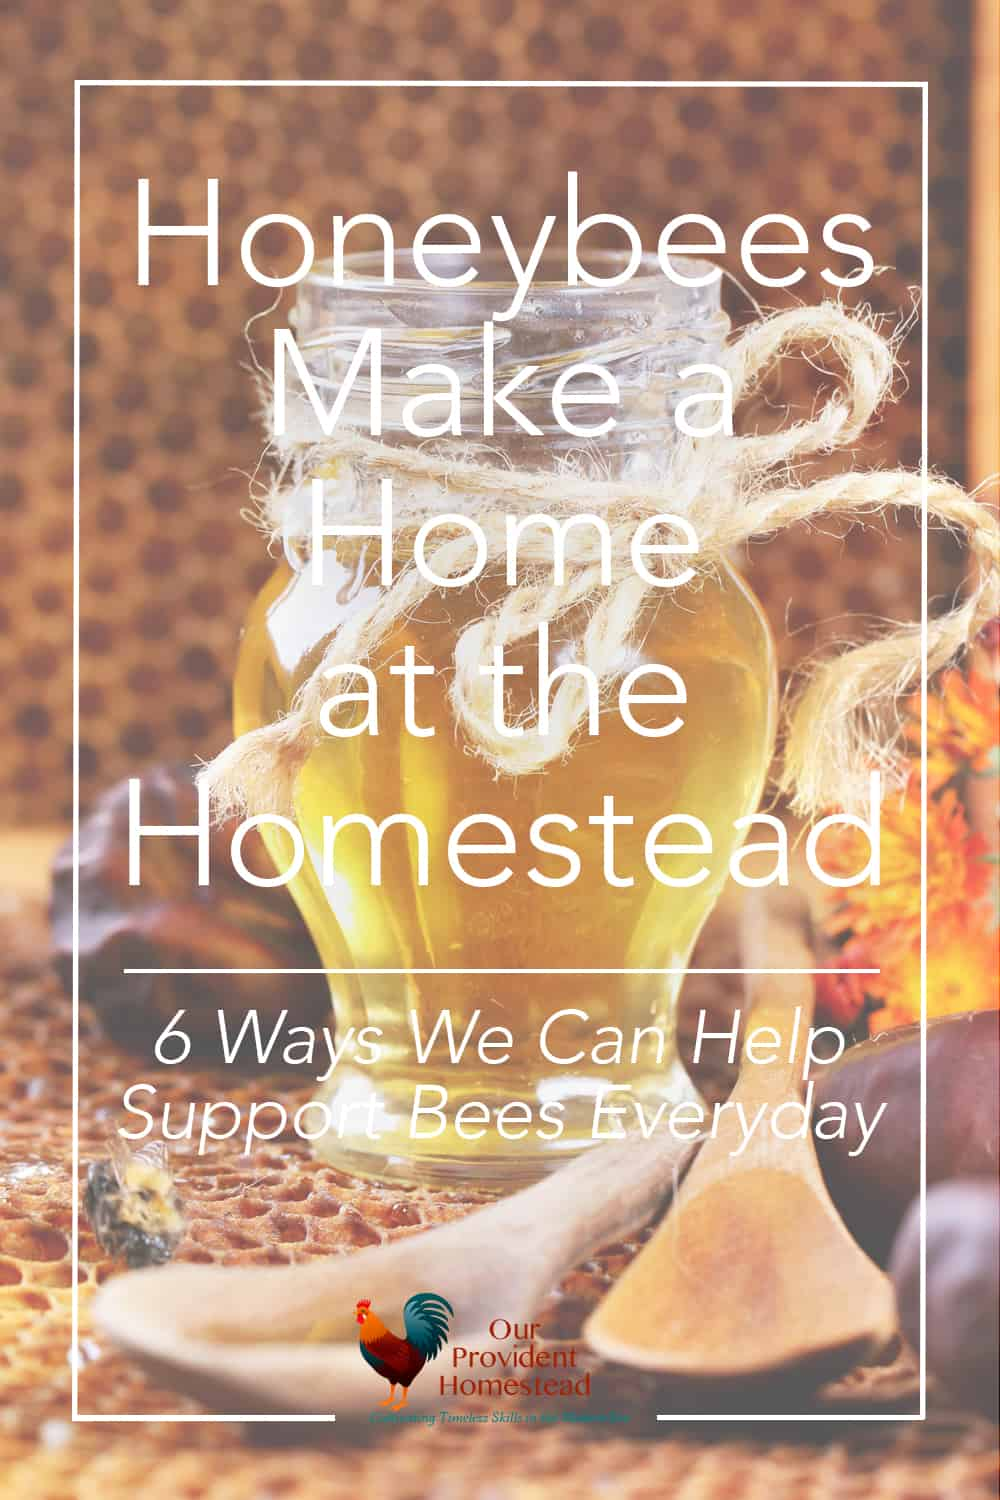 Do you worry about the honeybees? We discuss why we became beekeepers and 6 ways we can help support bees everyday at home. #bees #honeybees #beekeeping #savethebees #homesteading